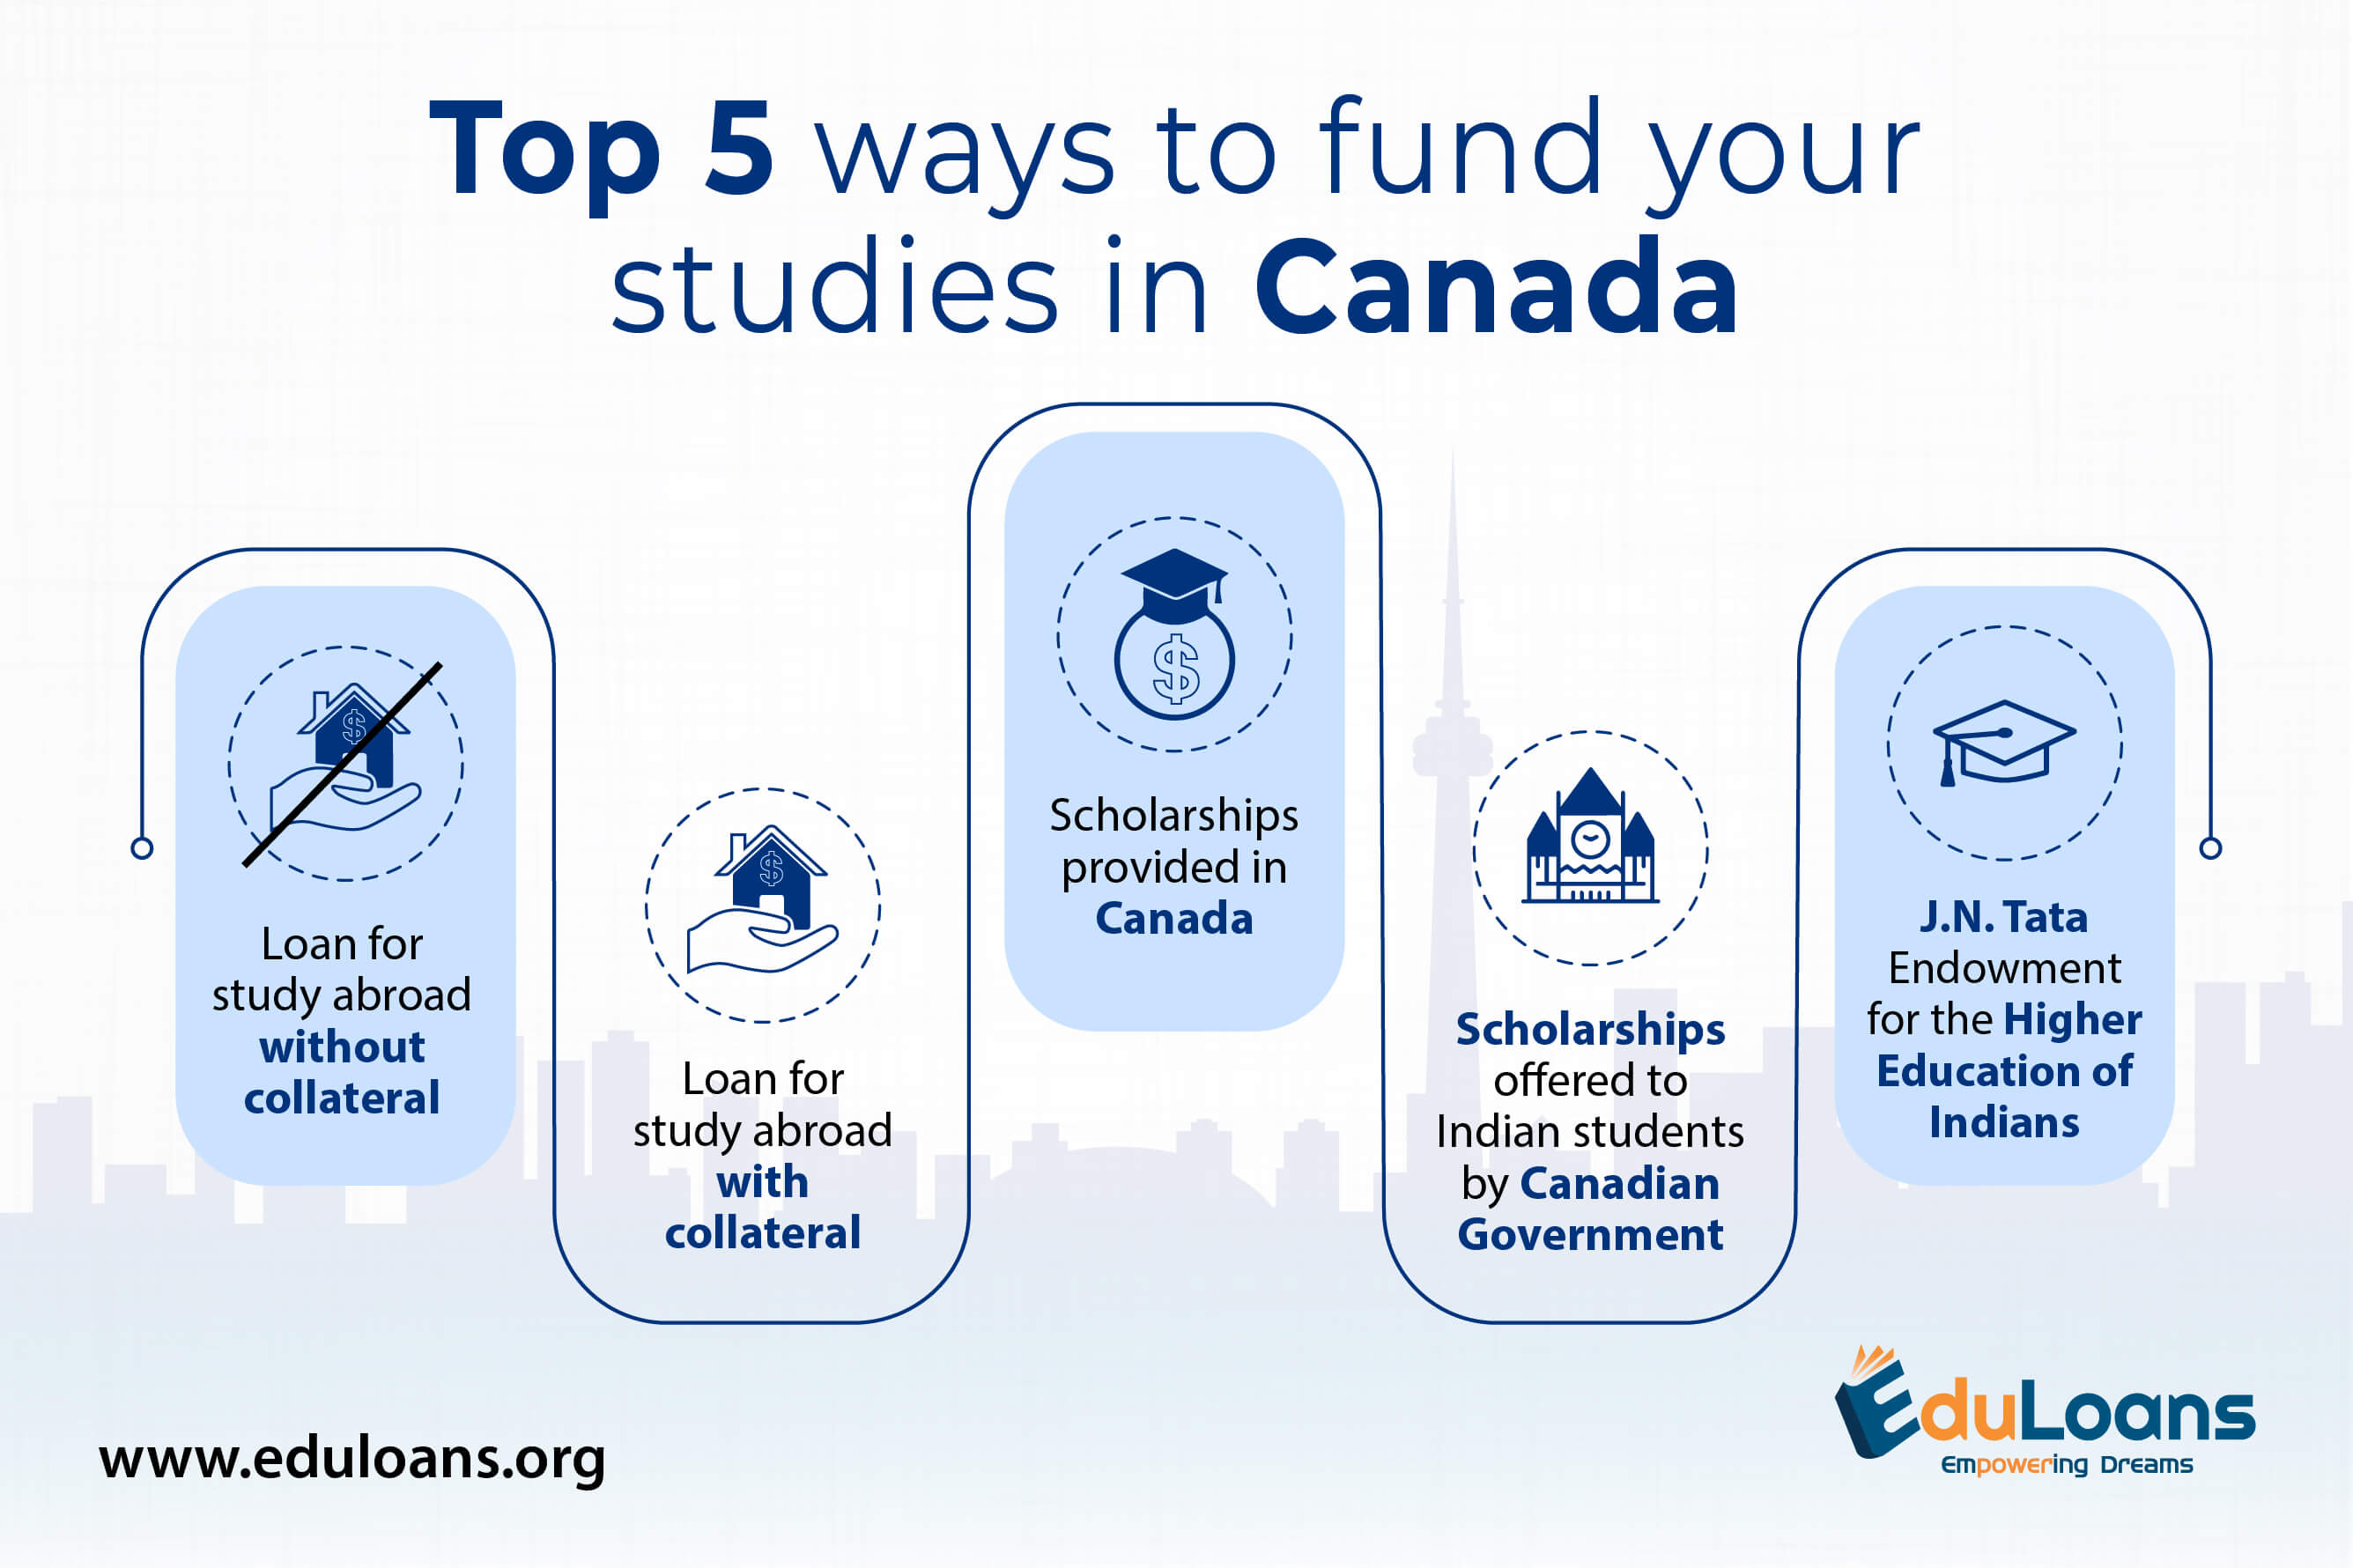 Top 5 ways to fund your studies in Canada